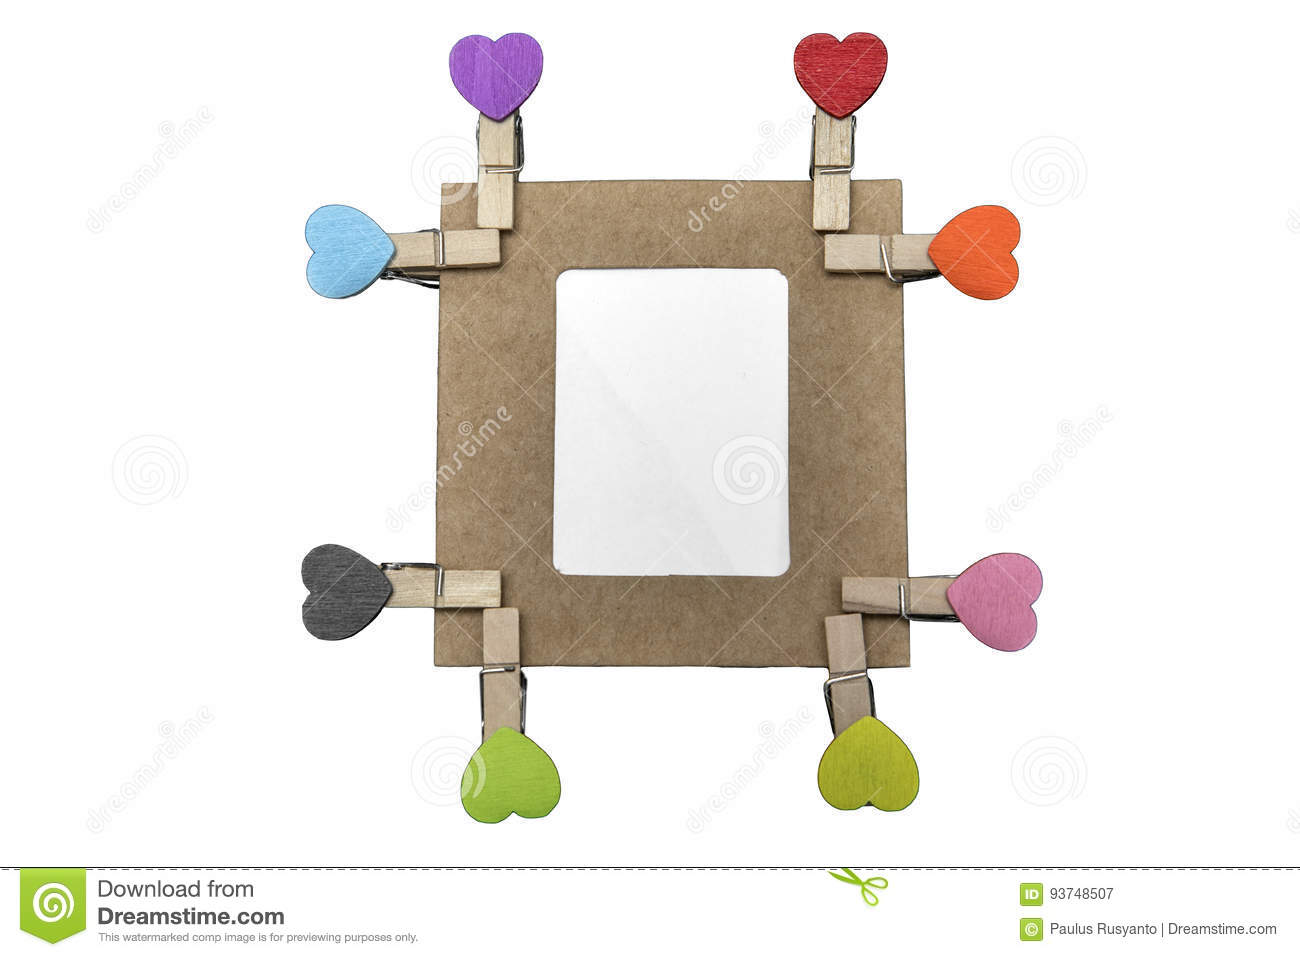 Eight Heart Clips With Cardboard Frame Stock Image - Image of hang ...